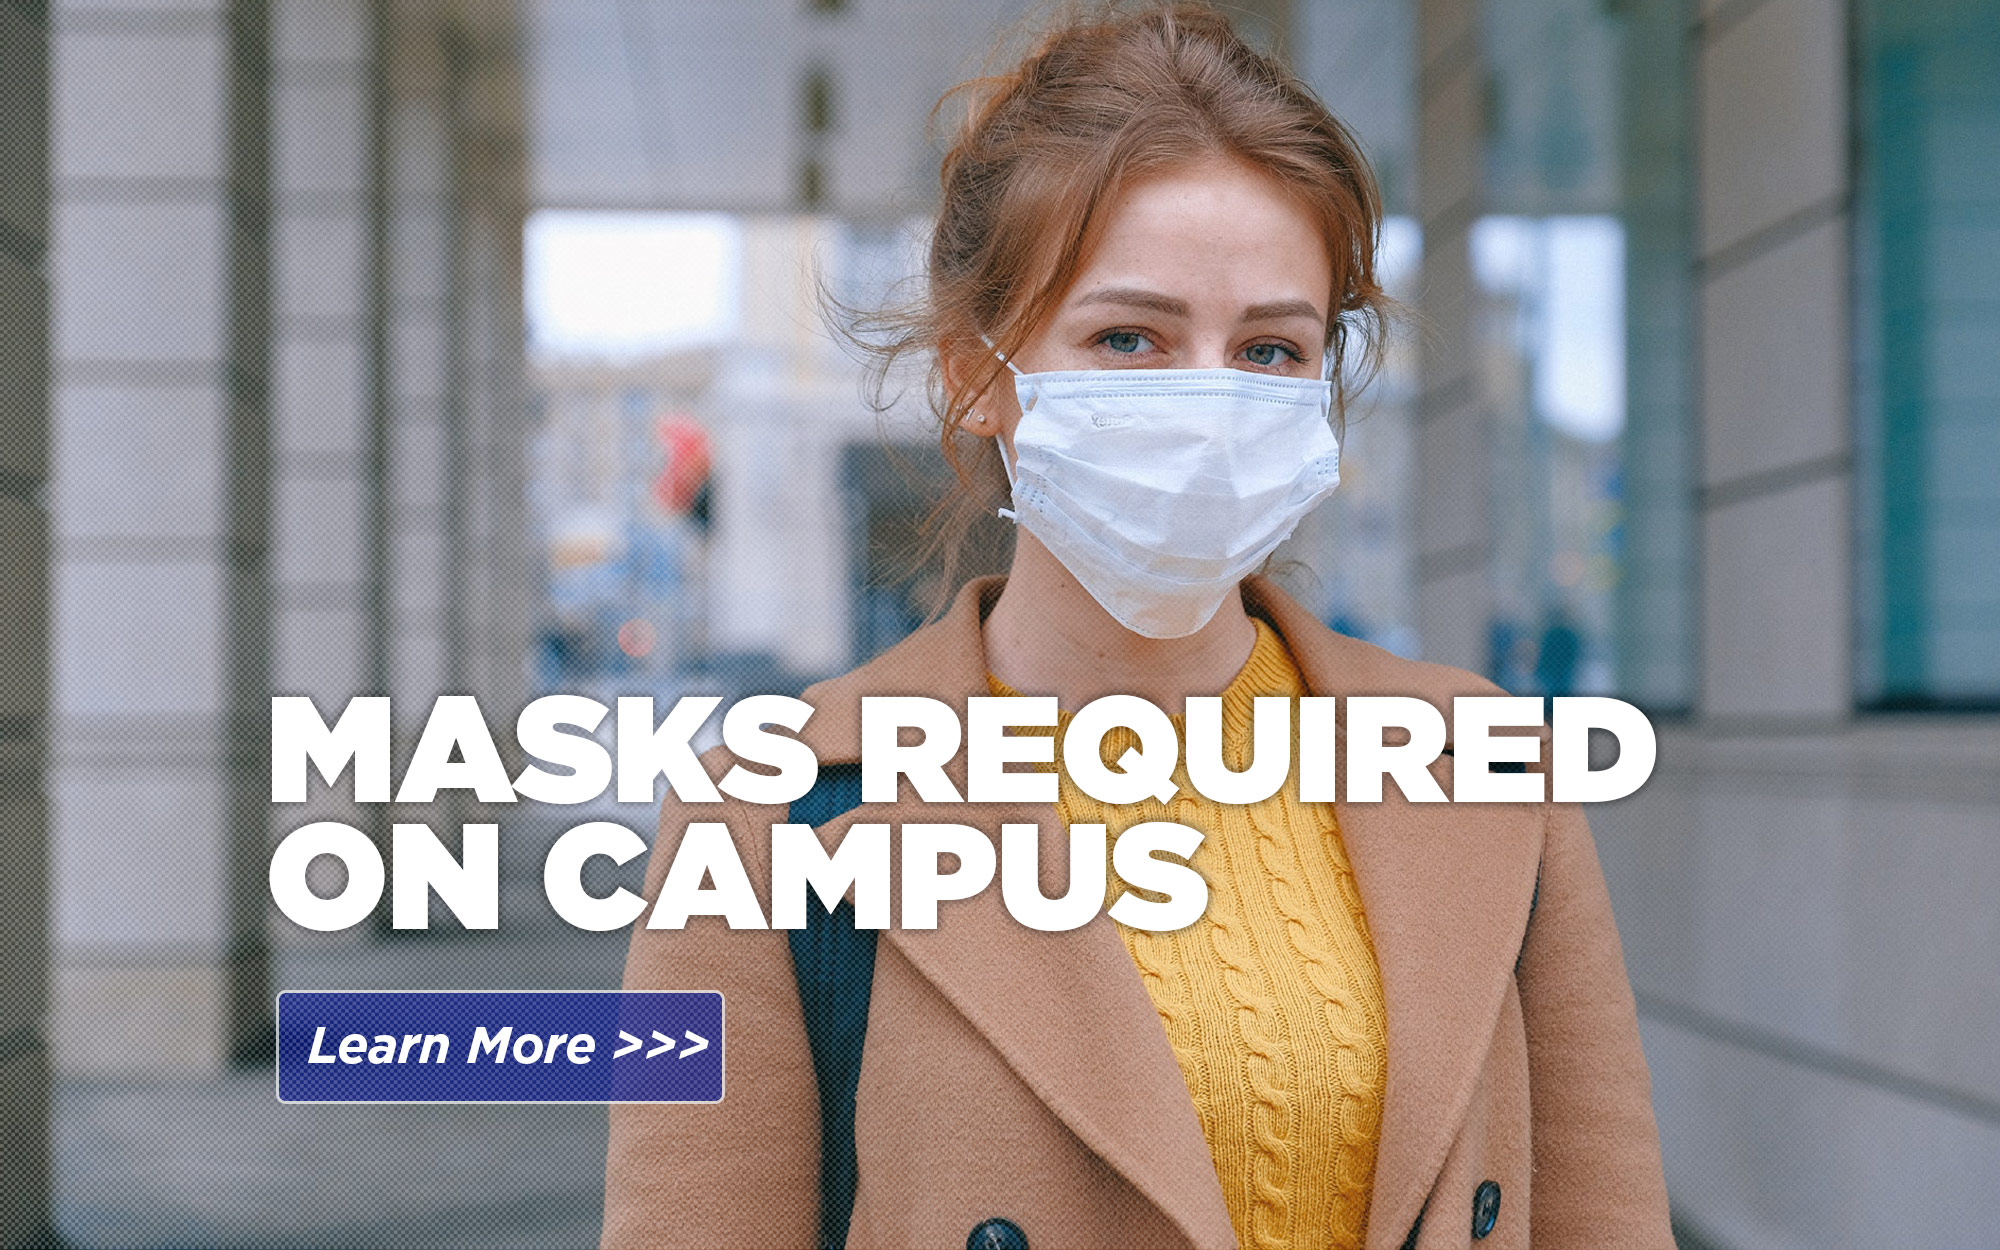 Face Masks and Health Screening Required on Campus